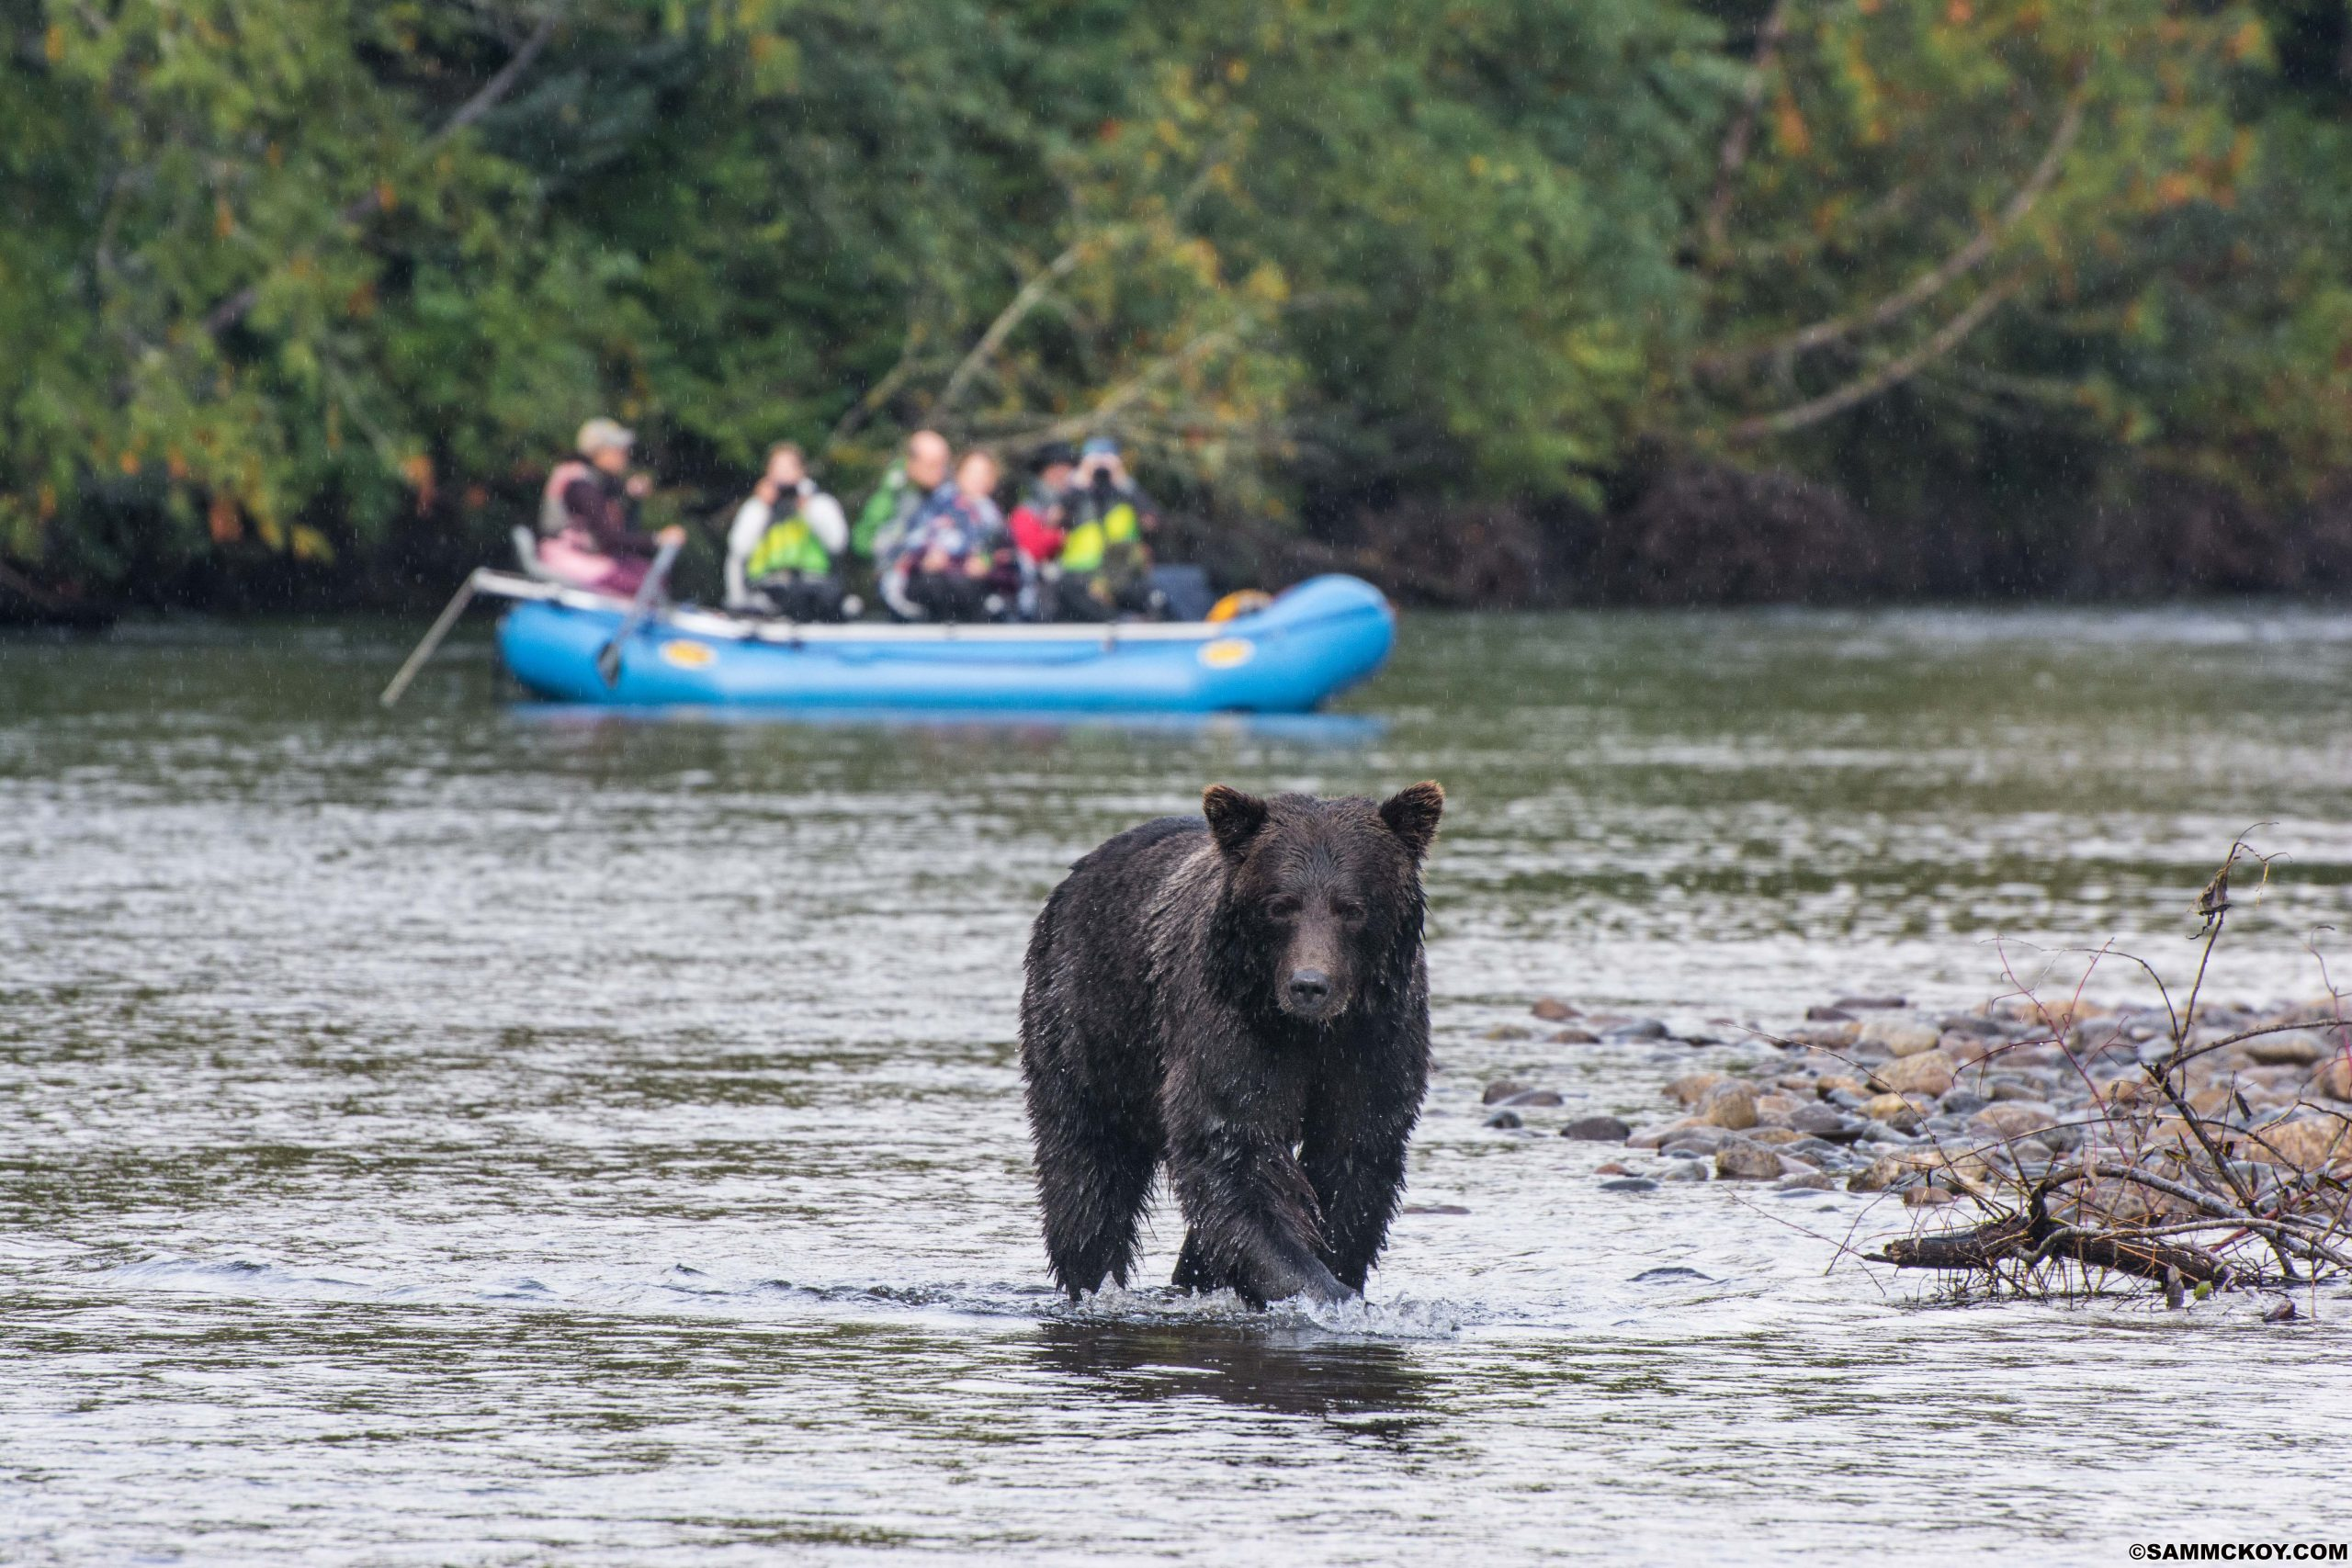 """<div id=""""tc-link""""><a href=""""http://www.bearviewing.ca/"""" target=""""_blank"""">Commercial Bear Viewing Association</a></div>"""